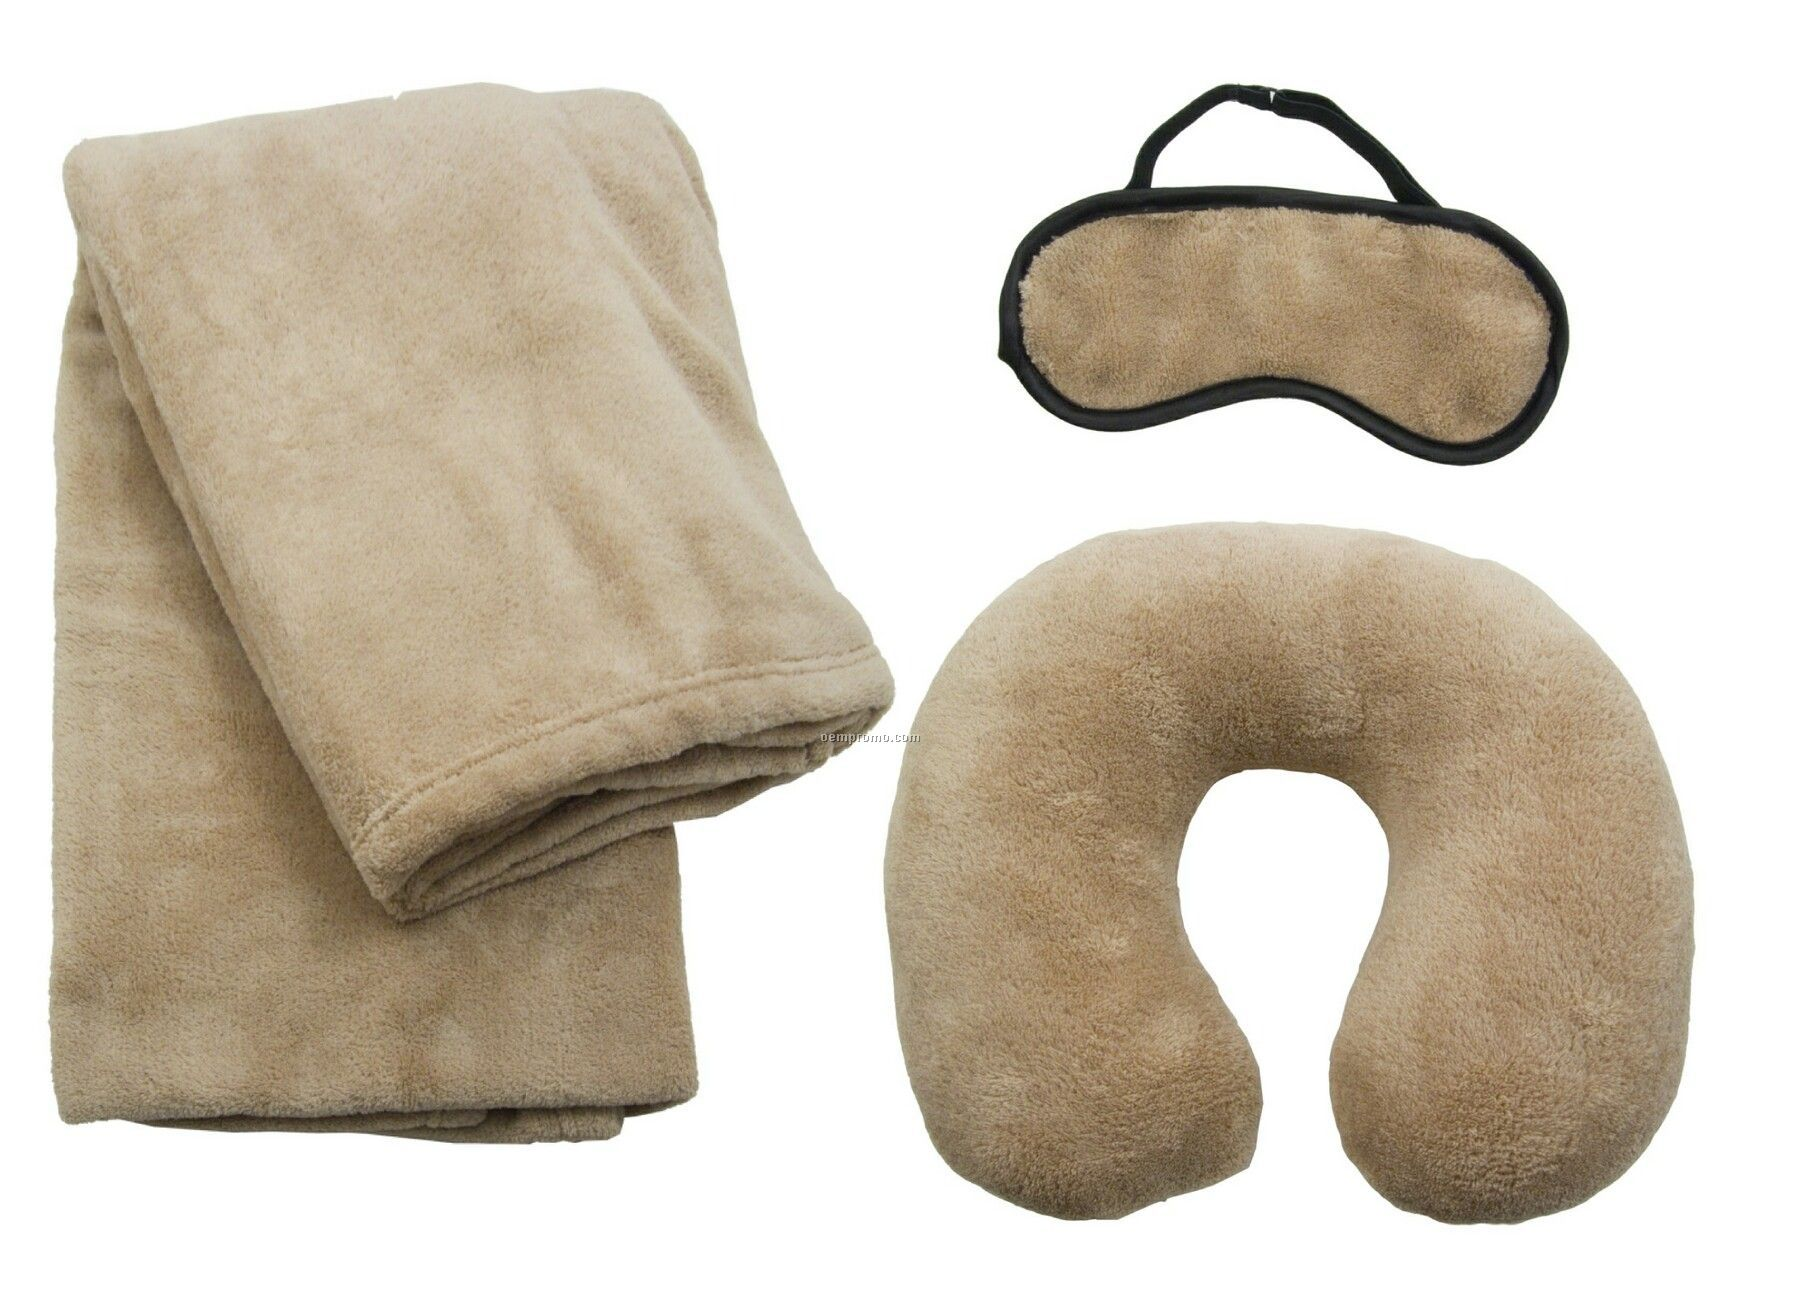 Travel-Set-W--Blanket-Pillow-Mask--Domestic-5-Day-Delivery-_7731317.jpg